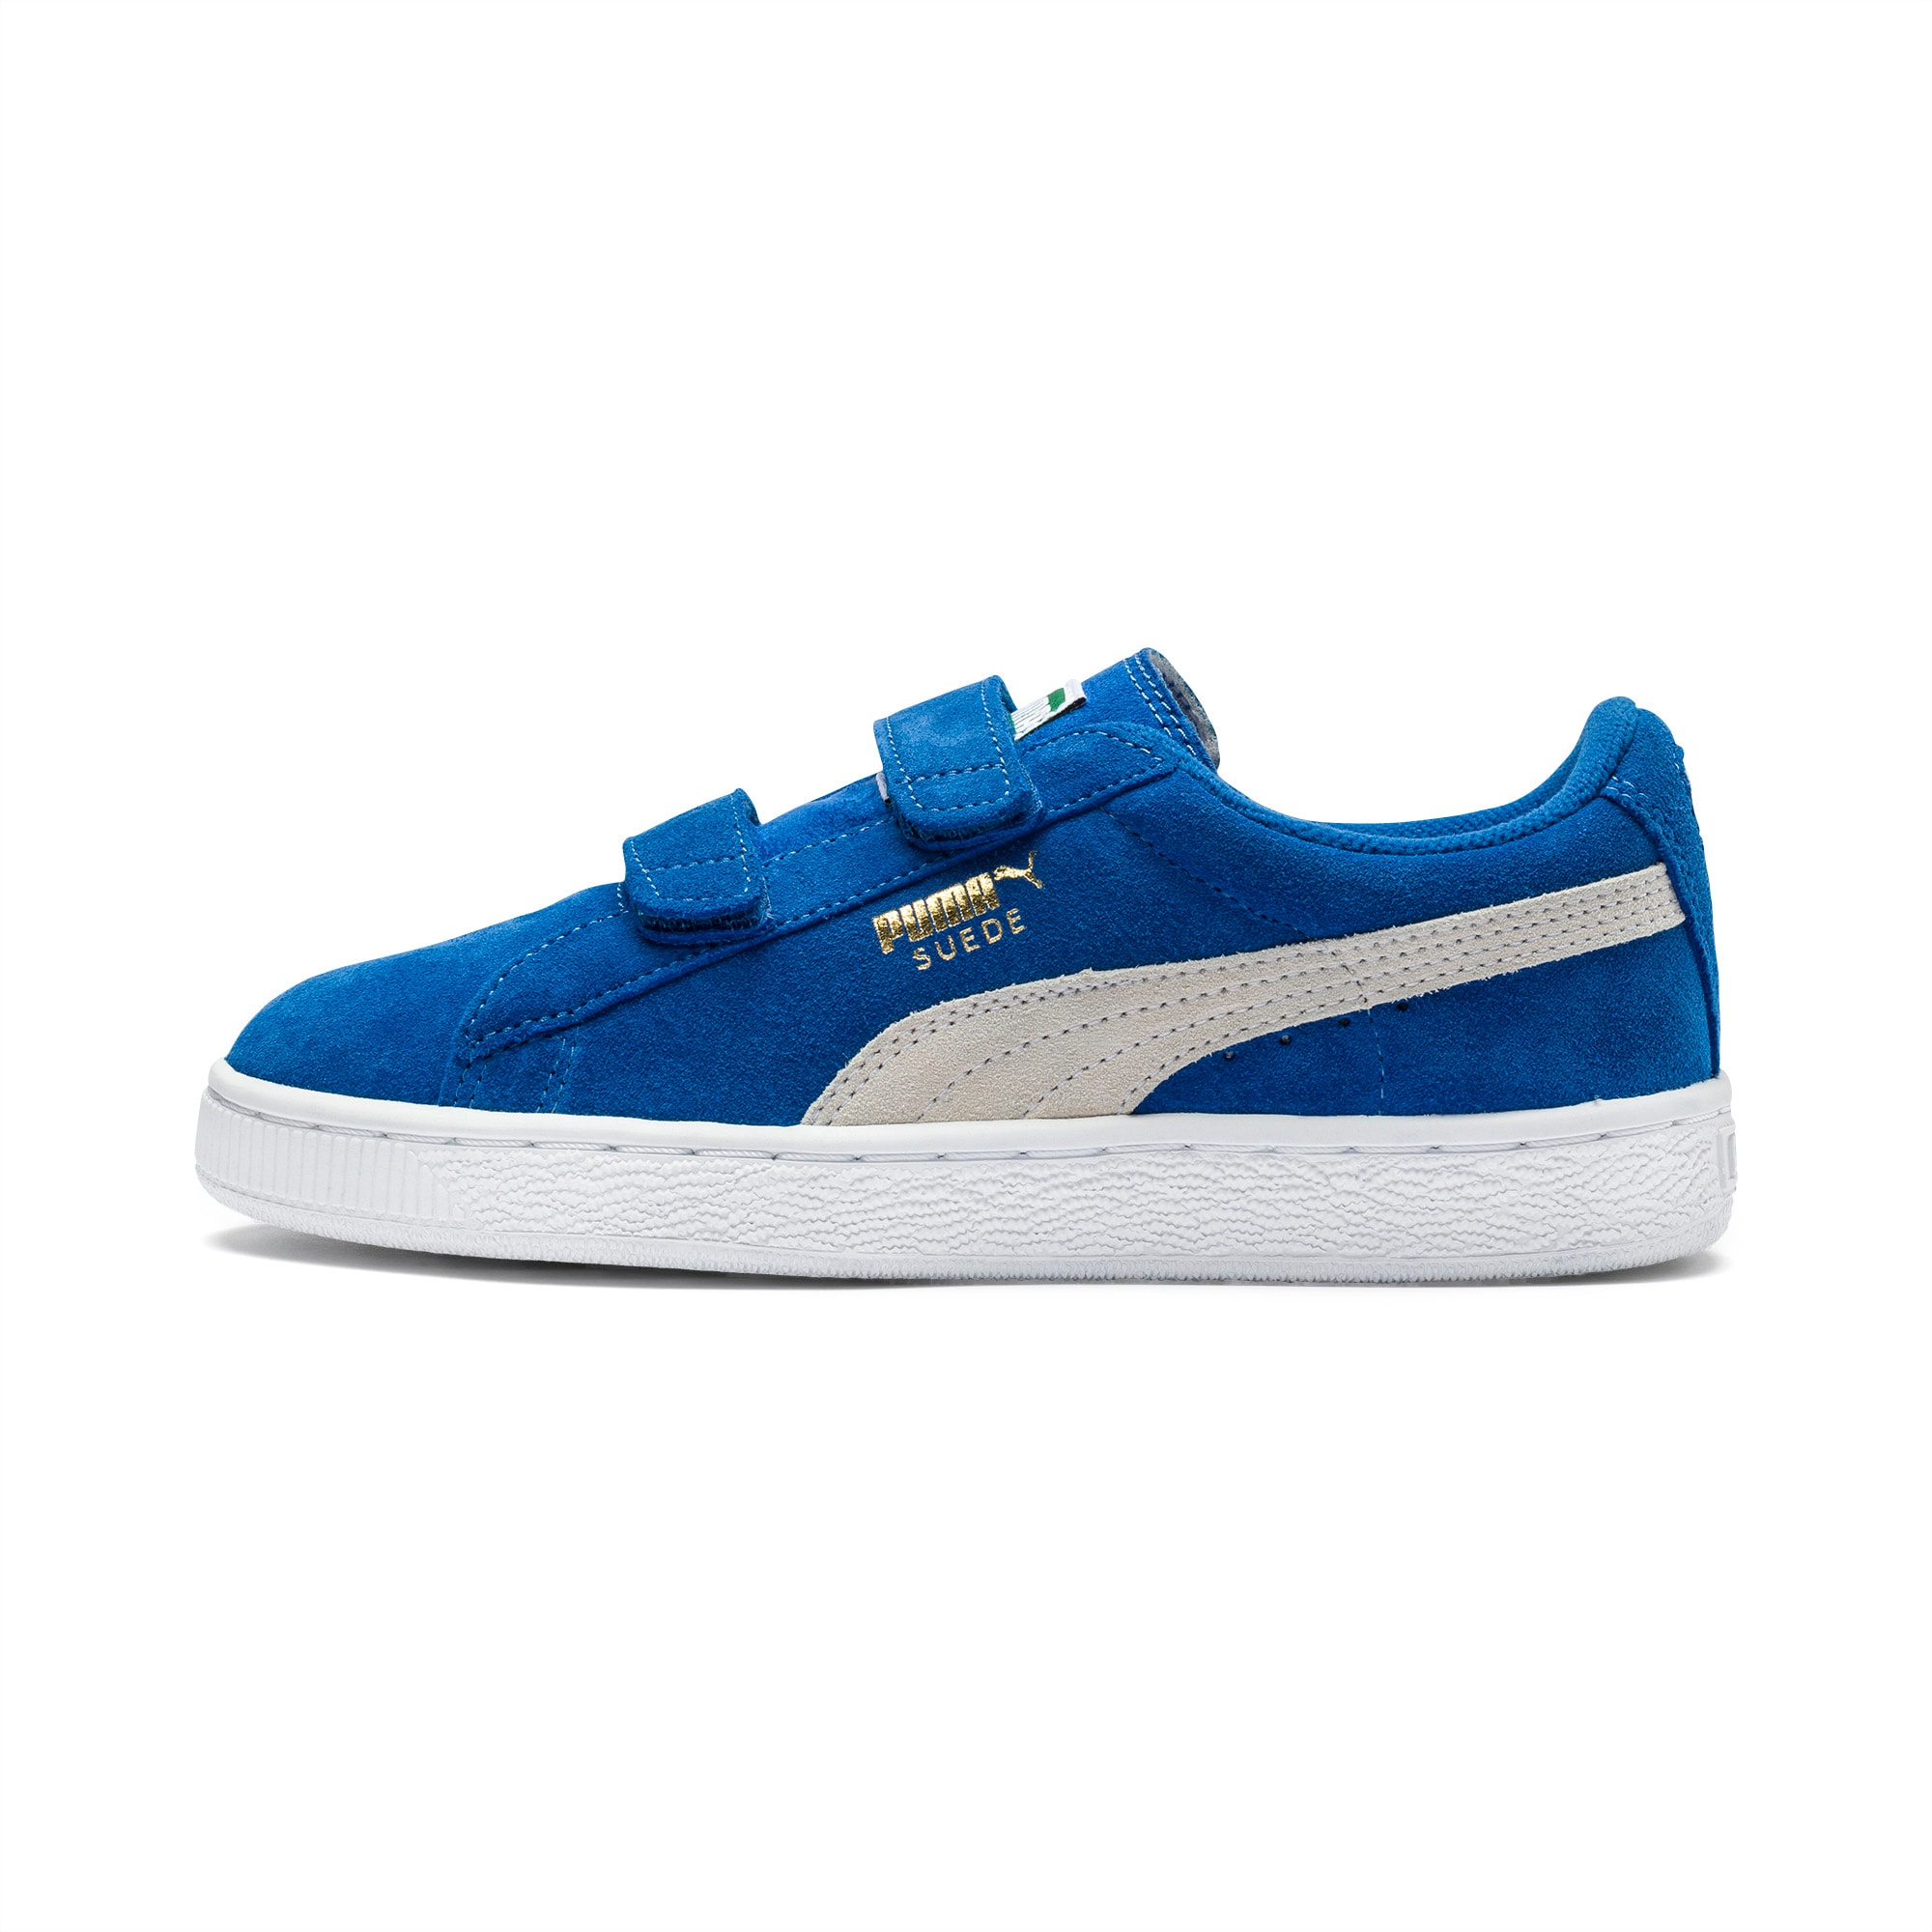 Suede AC Toddler Shoes, snorkel blue-white, extralarge